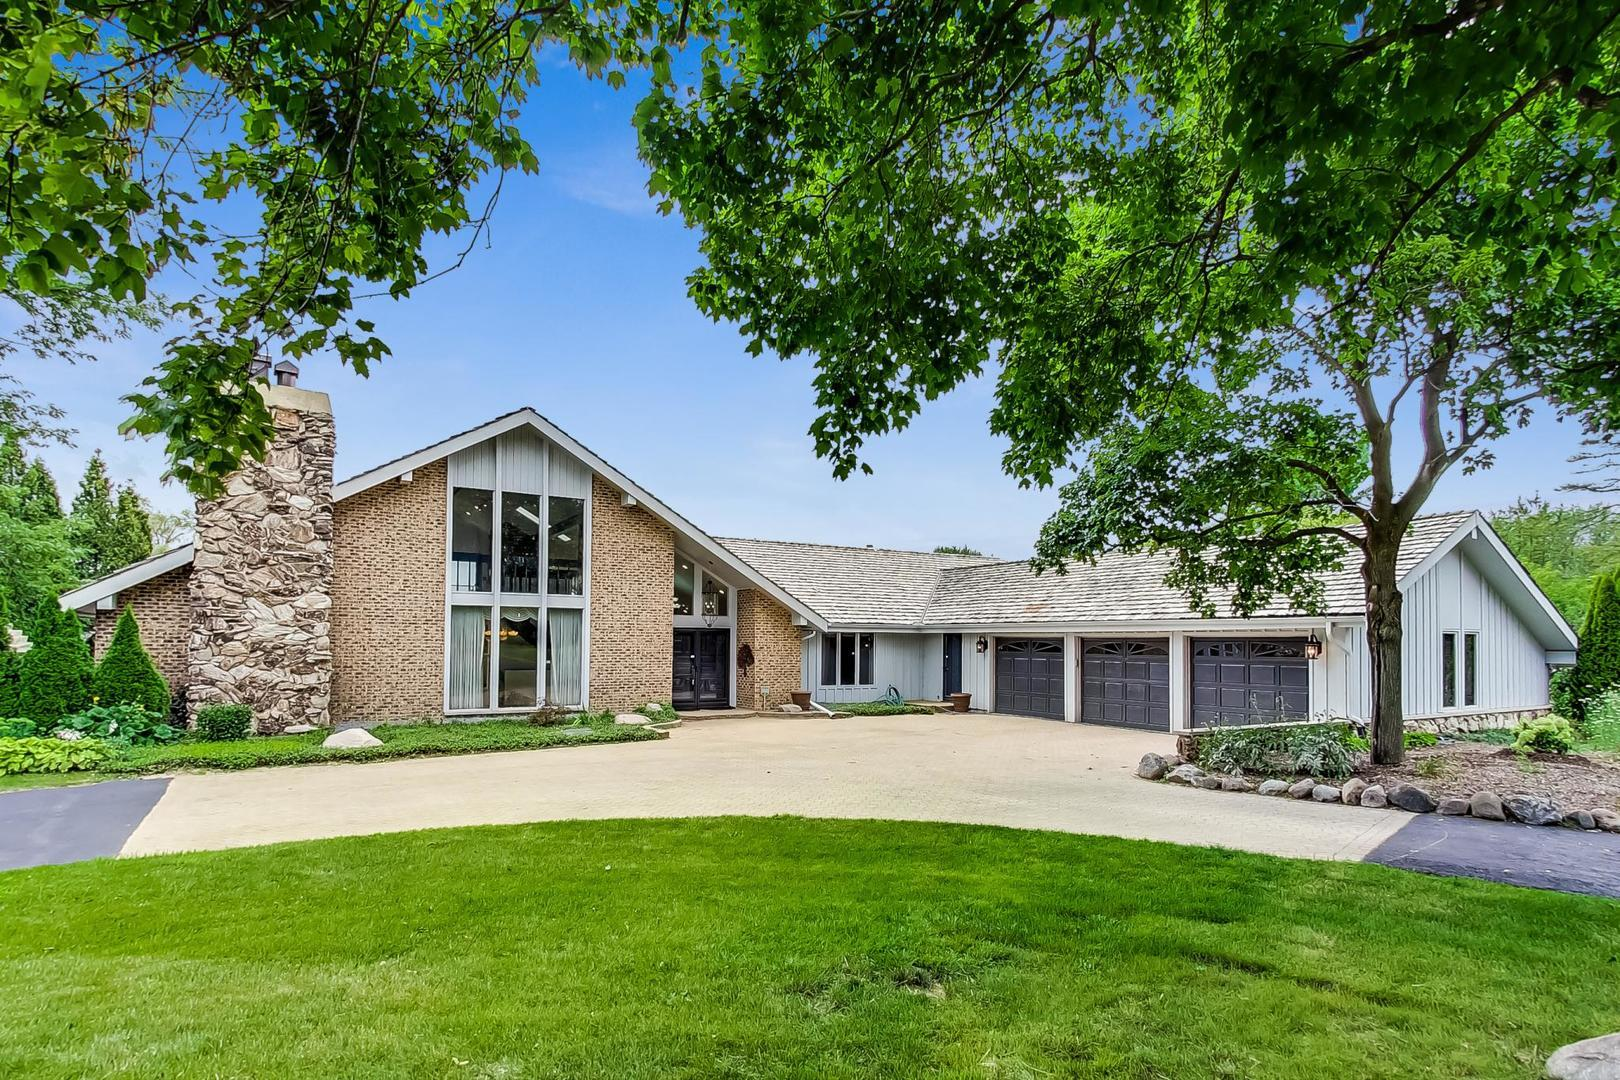 60 Witt Road, South Barrington, IL 60010 - #: 10855112